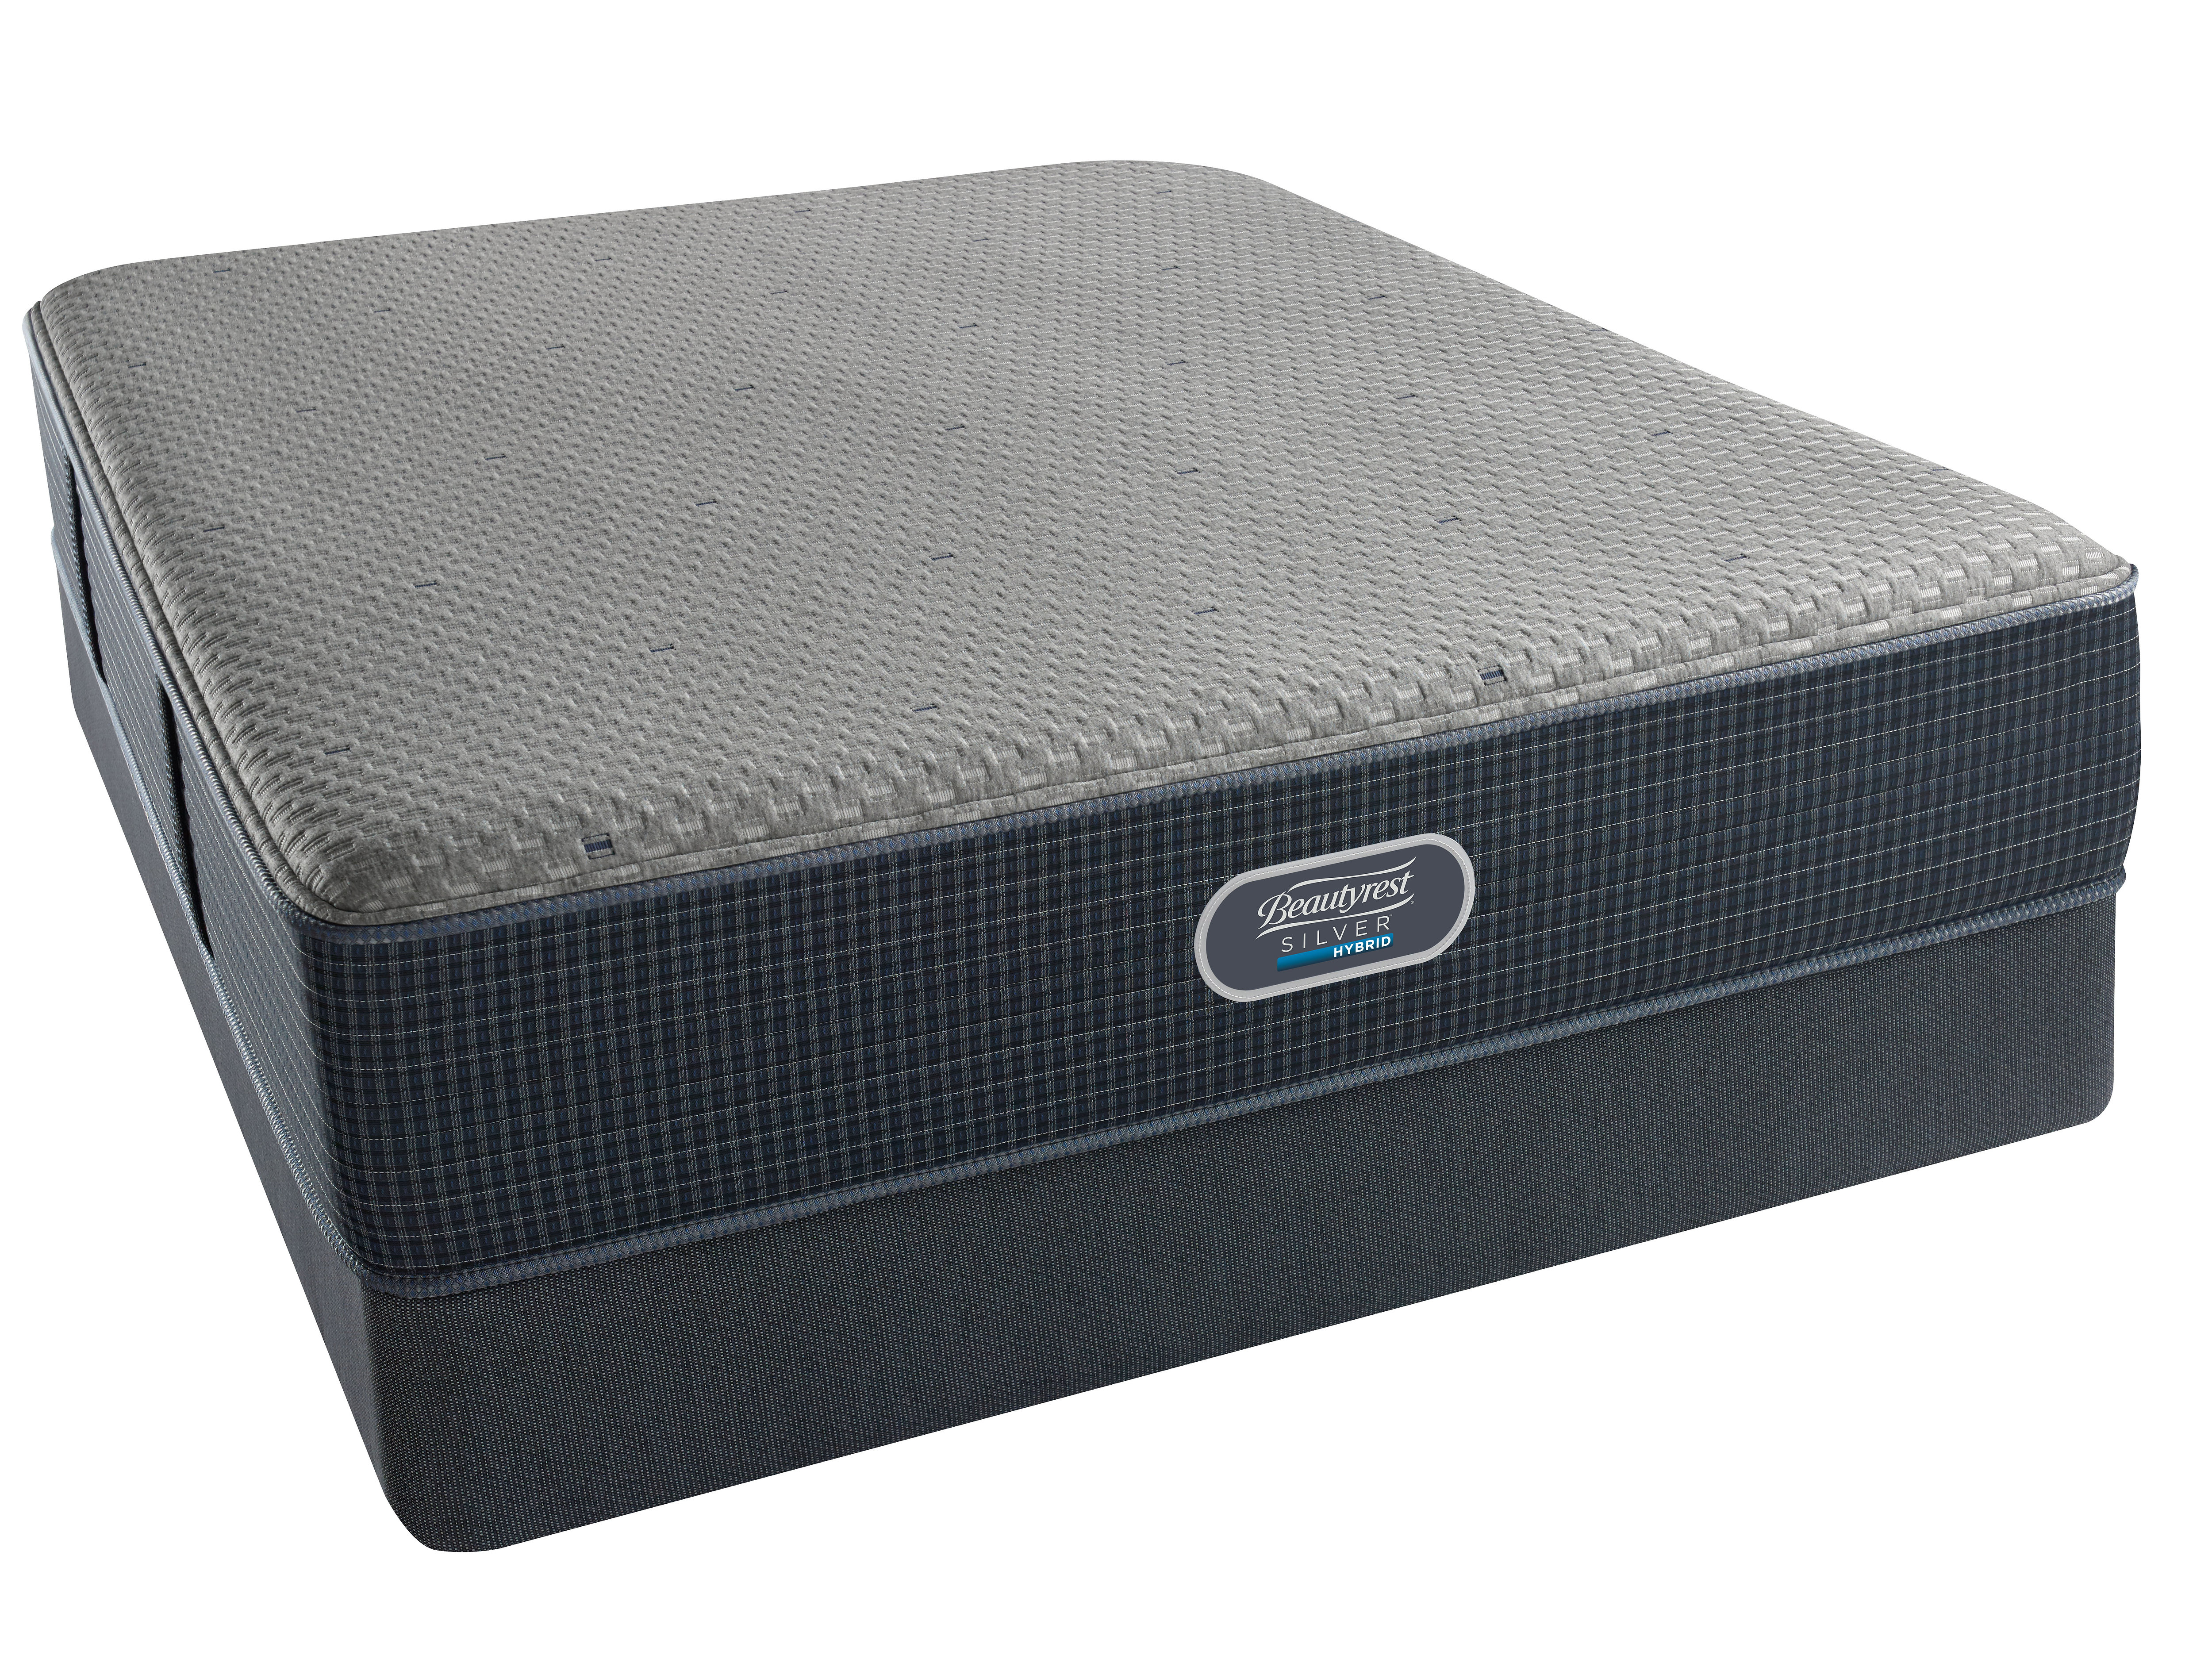 simmons memory foam mattress. featuring dynamic response memory foam, this ventilated foam mattress has a uniquely firm simmons -